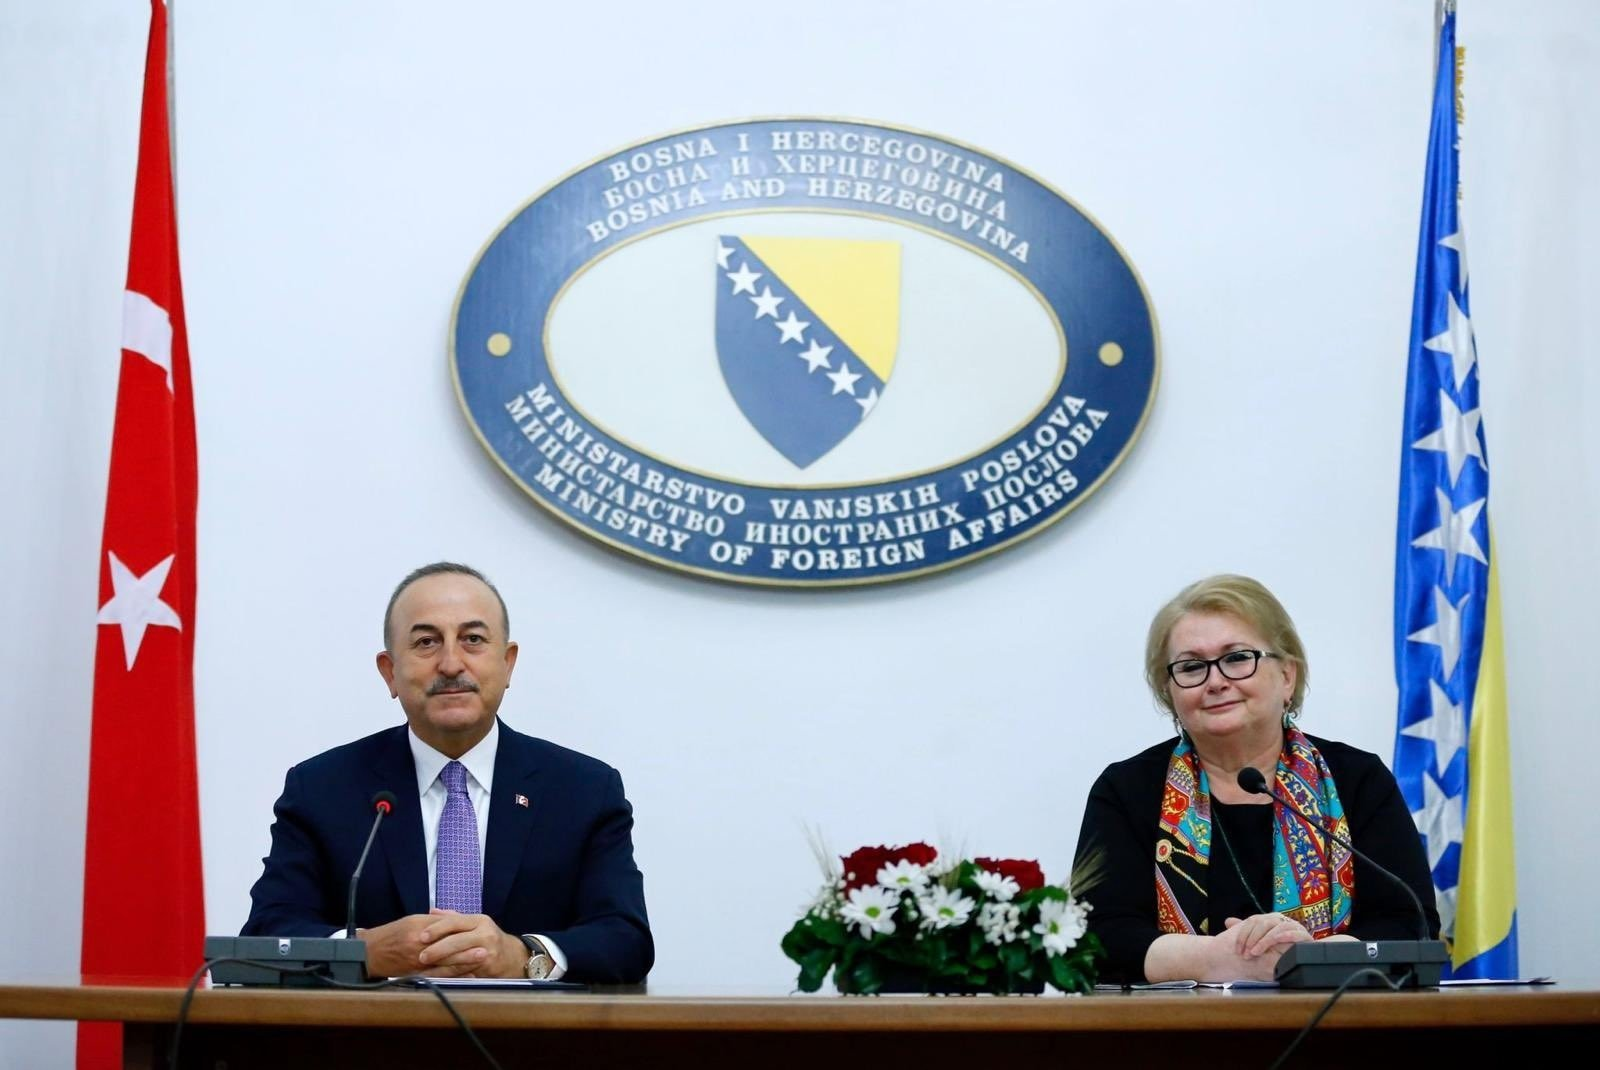 Turkish Foreign Minister Mevlüt Çavuşoğlu (L) and his Bosnian counterpart Bisera Turkovic speaks at a press conference, May 6, 2021. (IHA Photo)